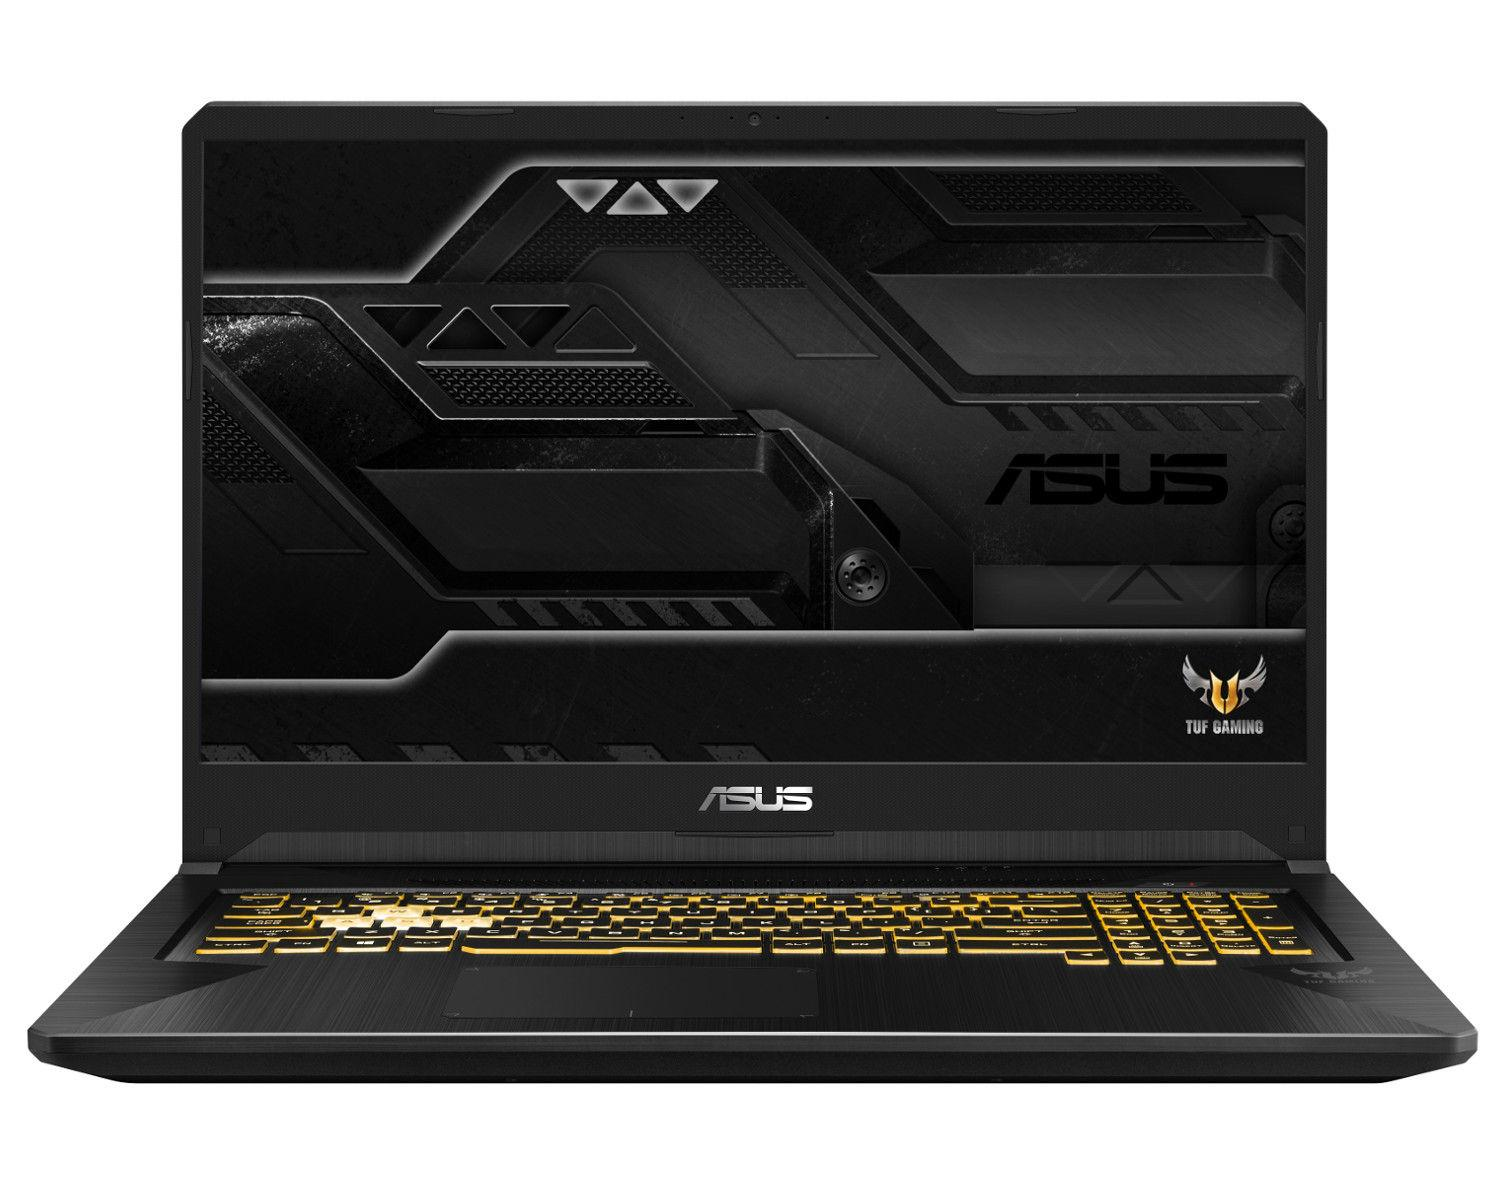 Ordinateur portable Asus TUF 765GM-EV149T Noir/Gold - GTX 1060 144 Hz - photo 3